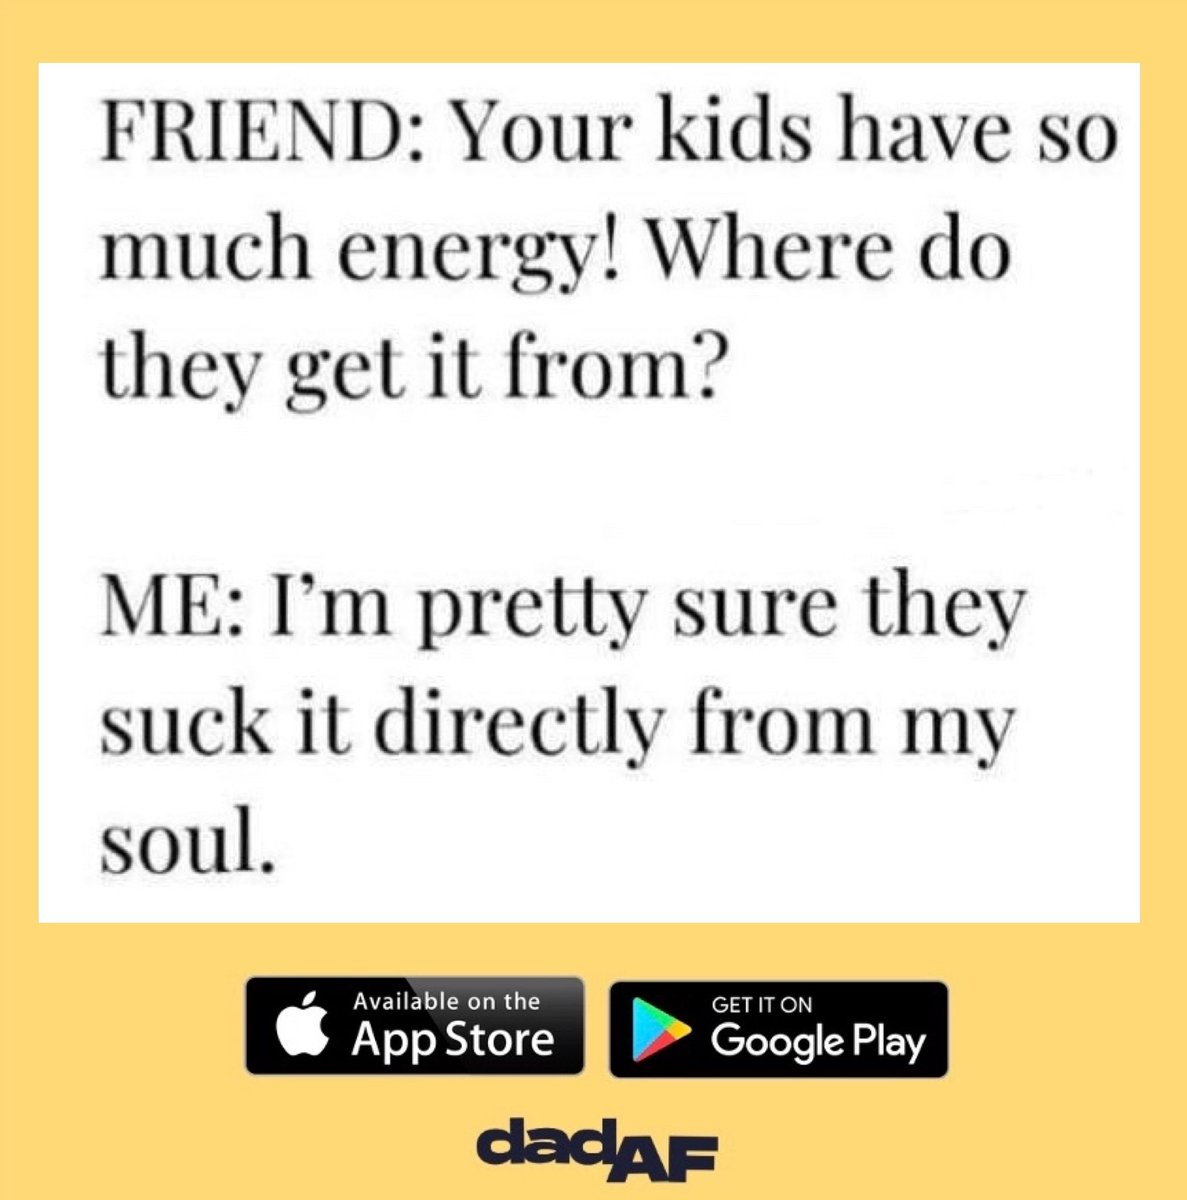 This explains why I'm always exhausted  • • • #dad #dadaf #dadlife #dads #parent #parents #parenthood #baby #toddler #kids #children #energy #noenergy #soul #tired #exhausted #knackered #sleep #dadcommunity #dadnetwork pic.twitter.com/4HOnIeV77D